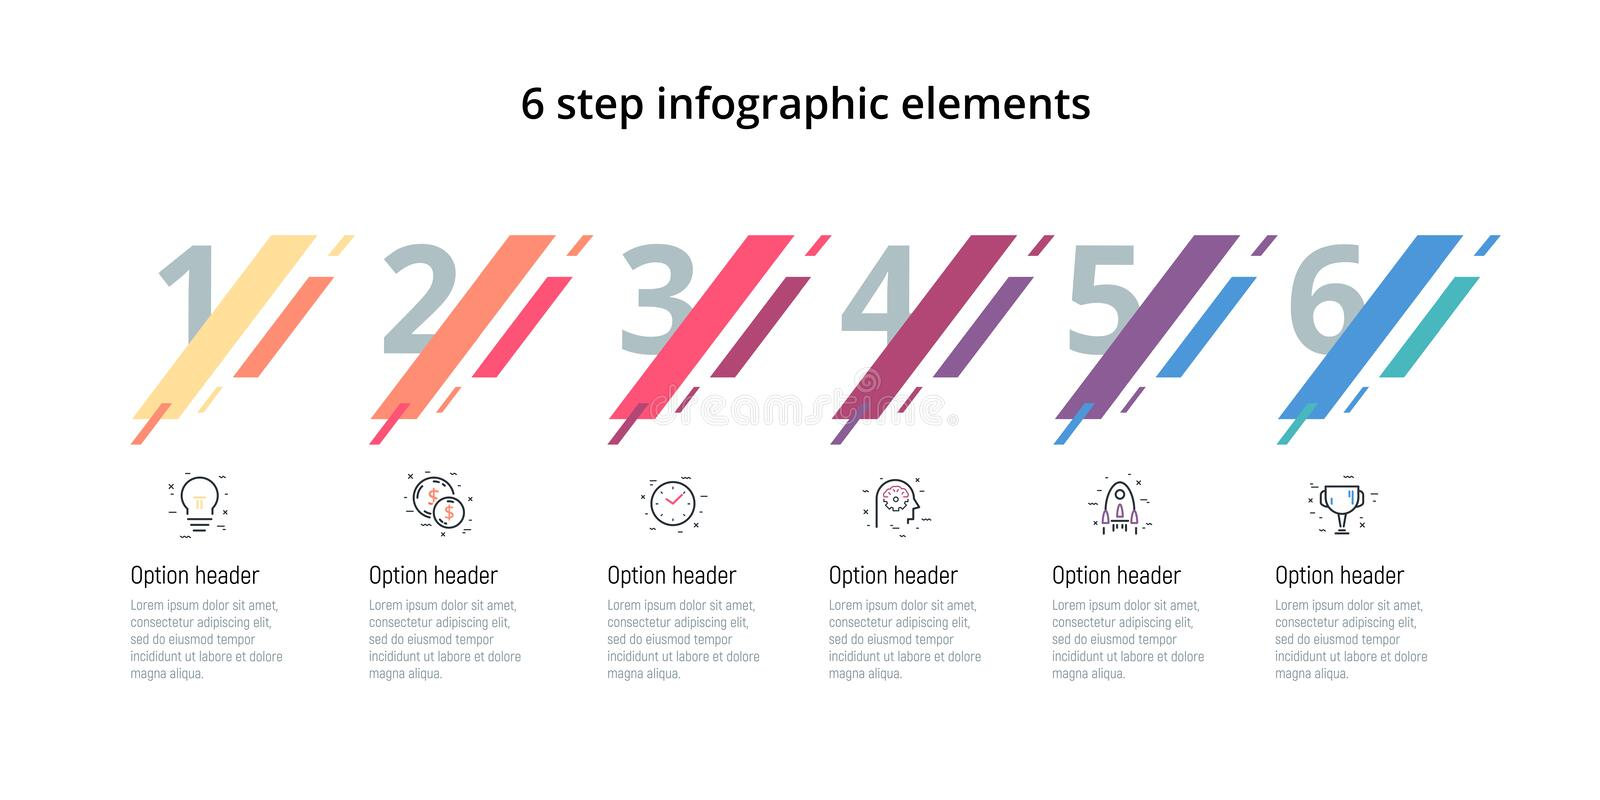 Business process chart infographic with 6 steps. Modern corporate workflow graphic elements. Company flowchart presentation slide. Template. Vector info graphic vector illustration